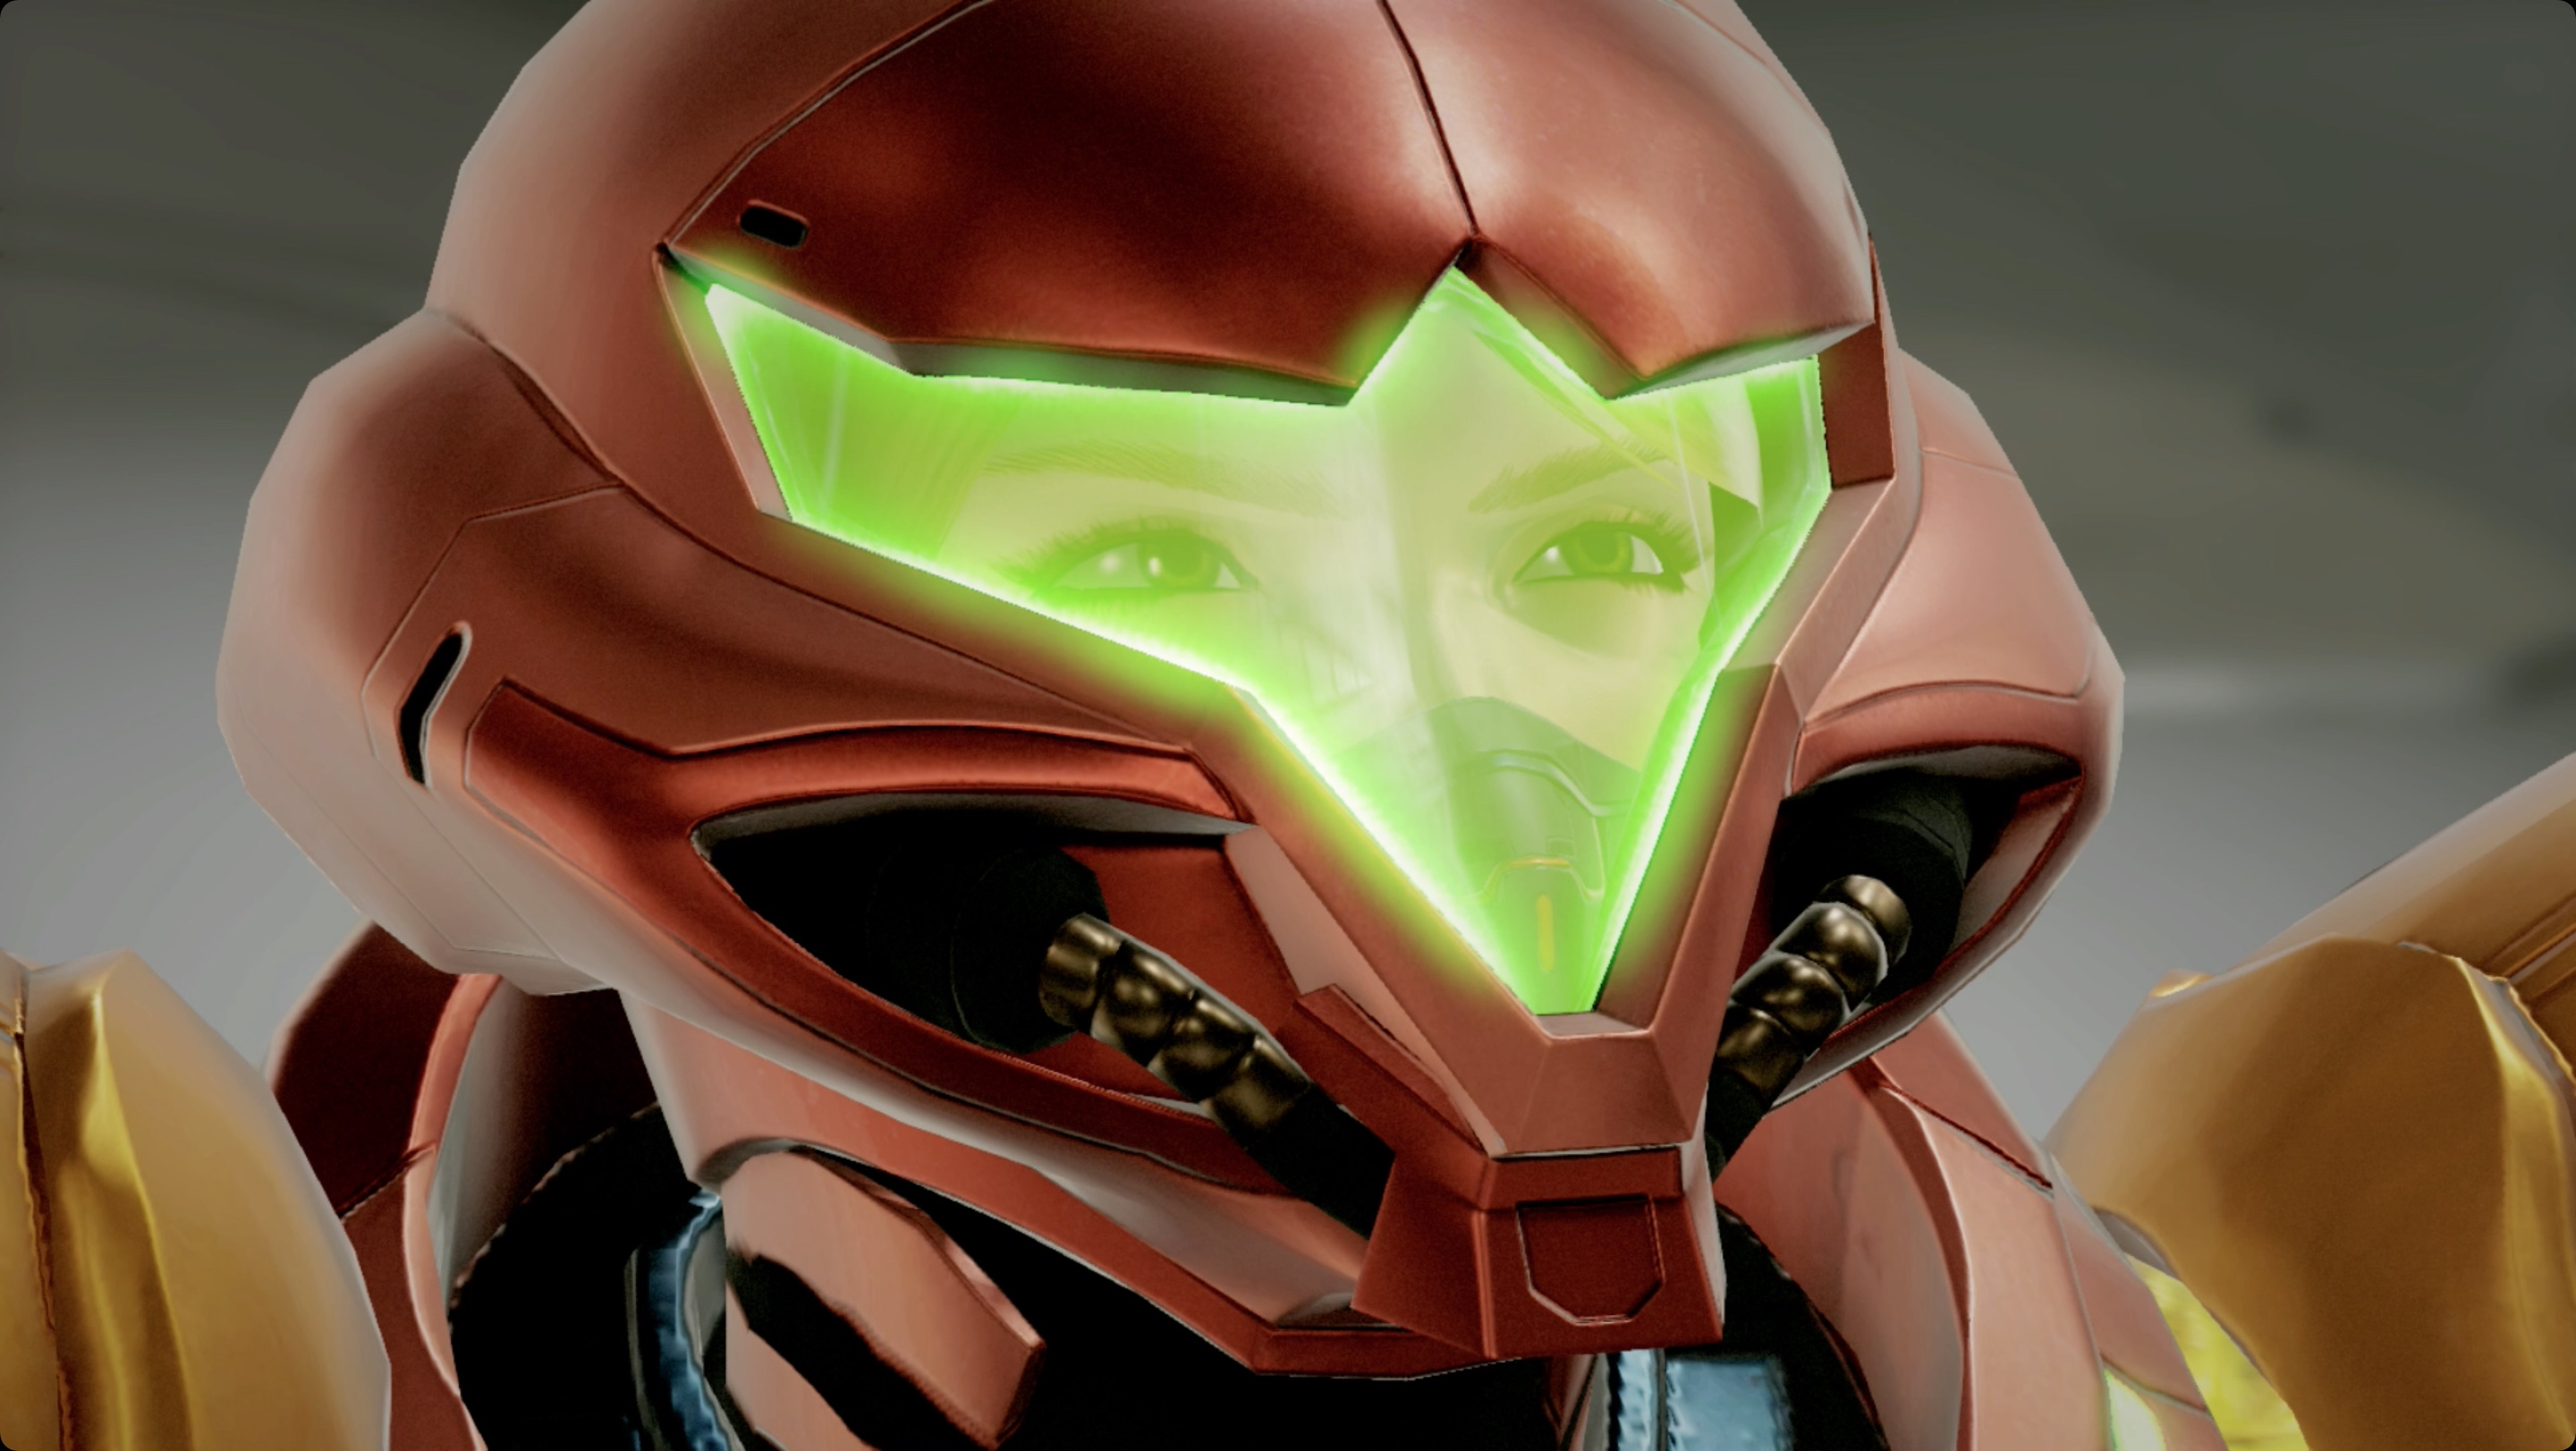 Every Metroid Dread suit upgrade, Missile Tank, and Energy Tank